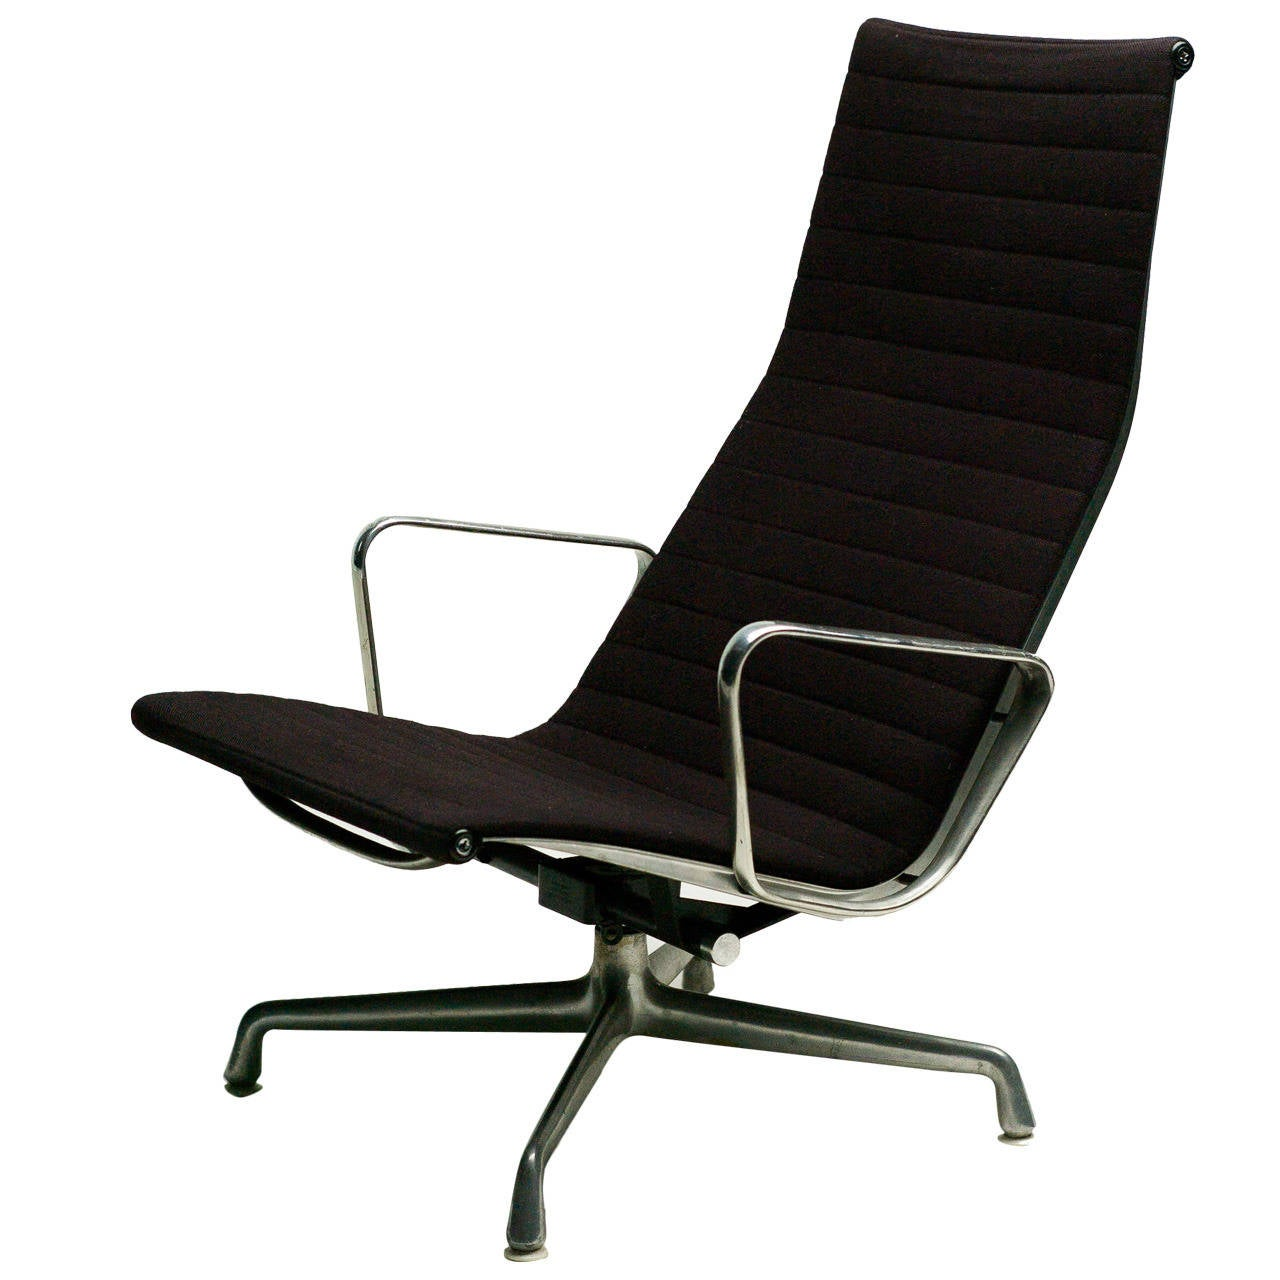 charles eames ea124 lounge chair by herman miller for sale at 1stdibs. Black Bedroom Furniture Sets. Home Design Ideas